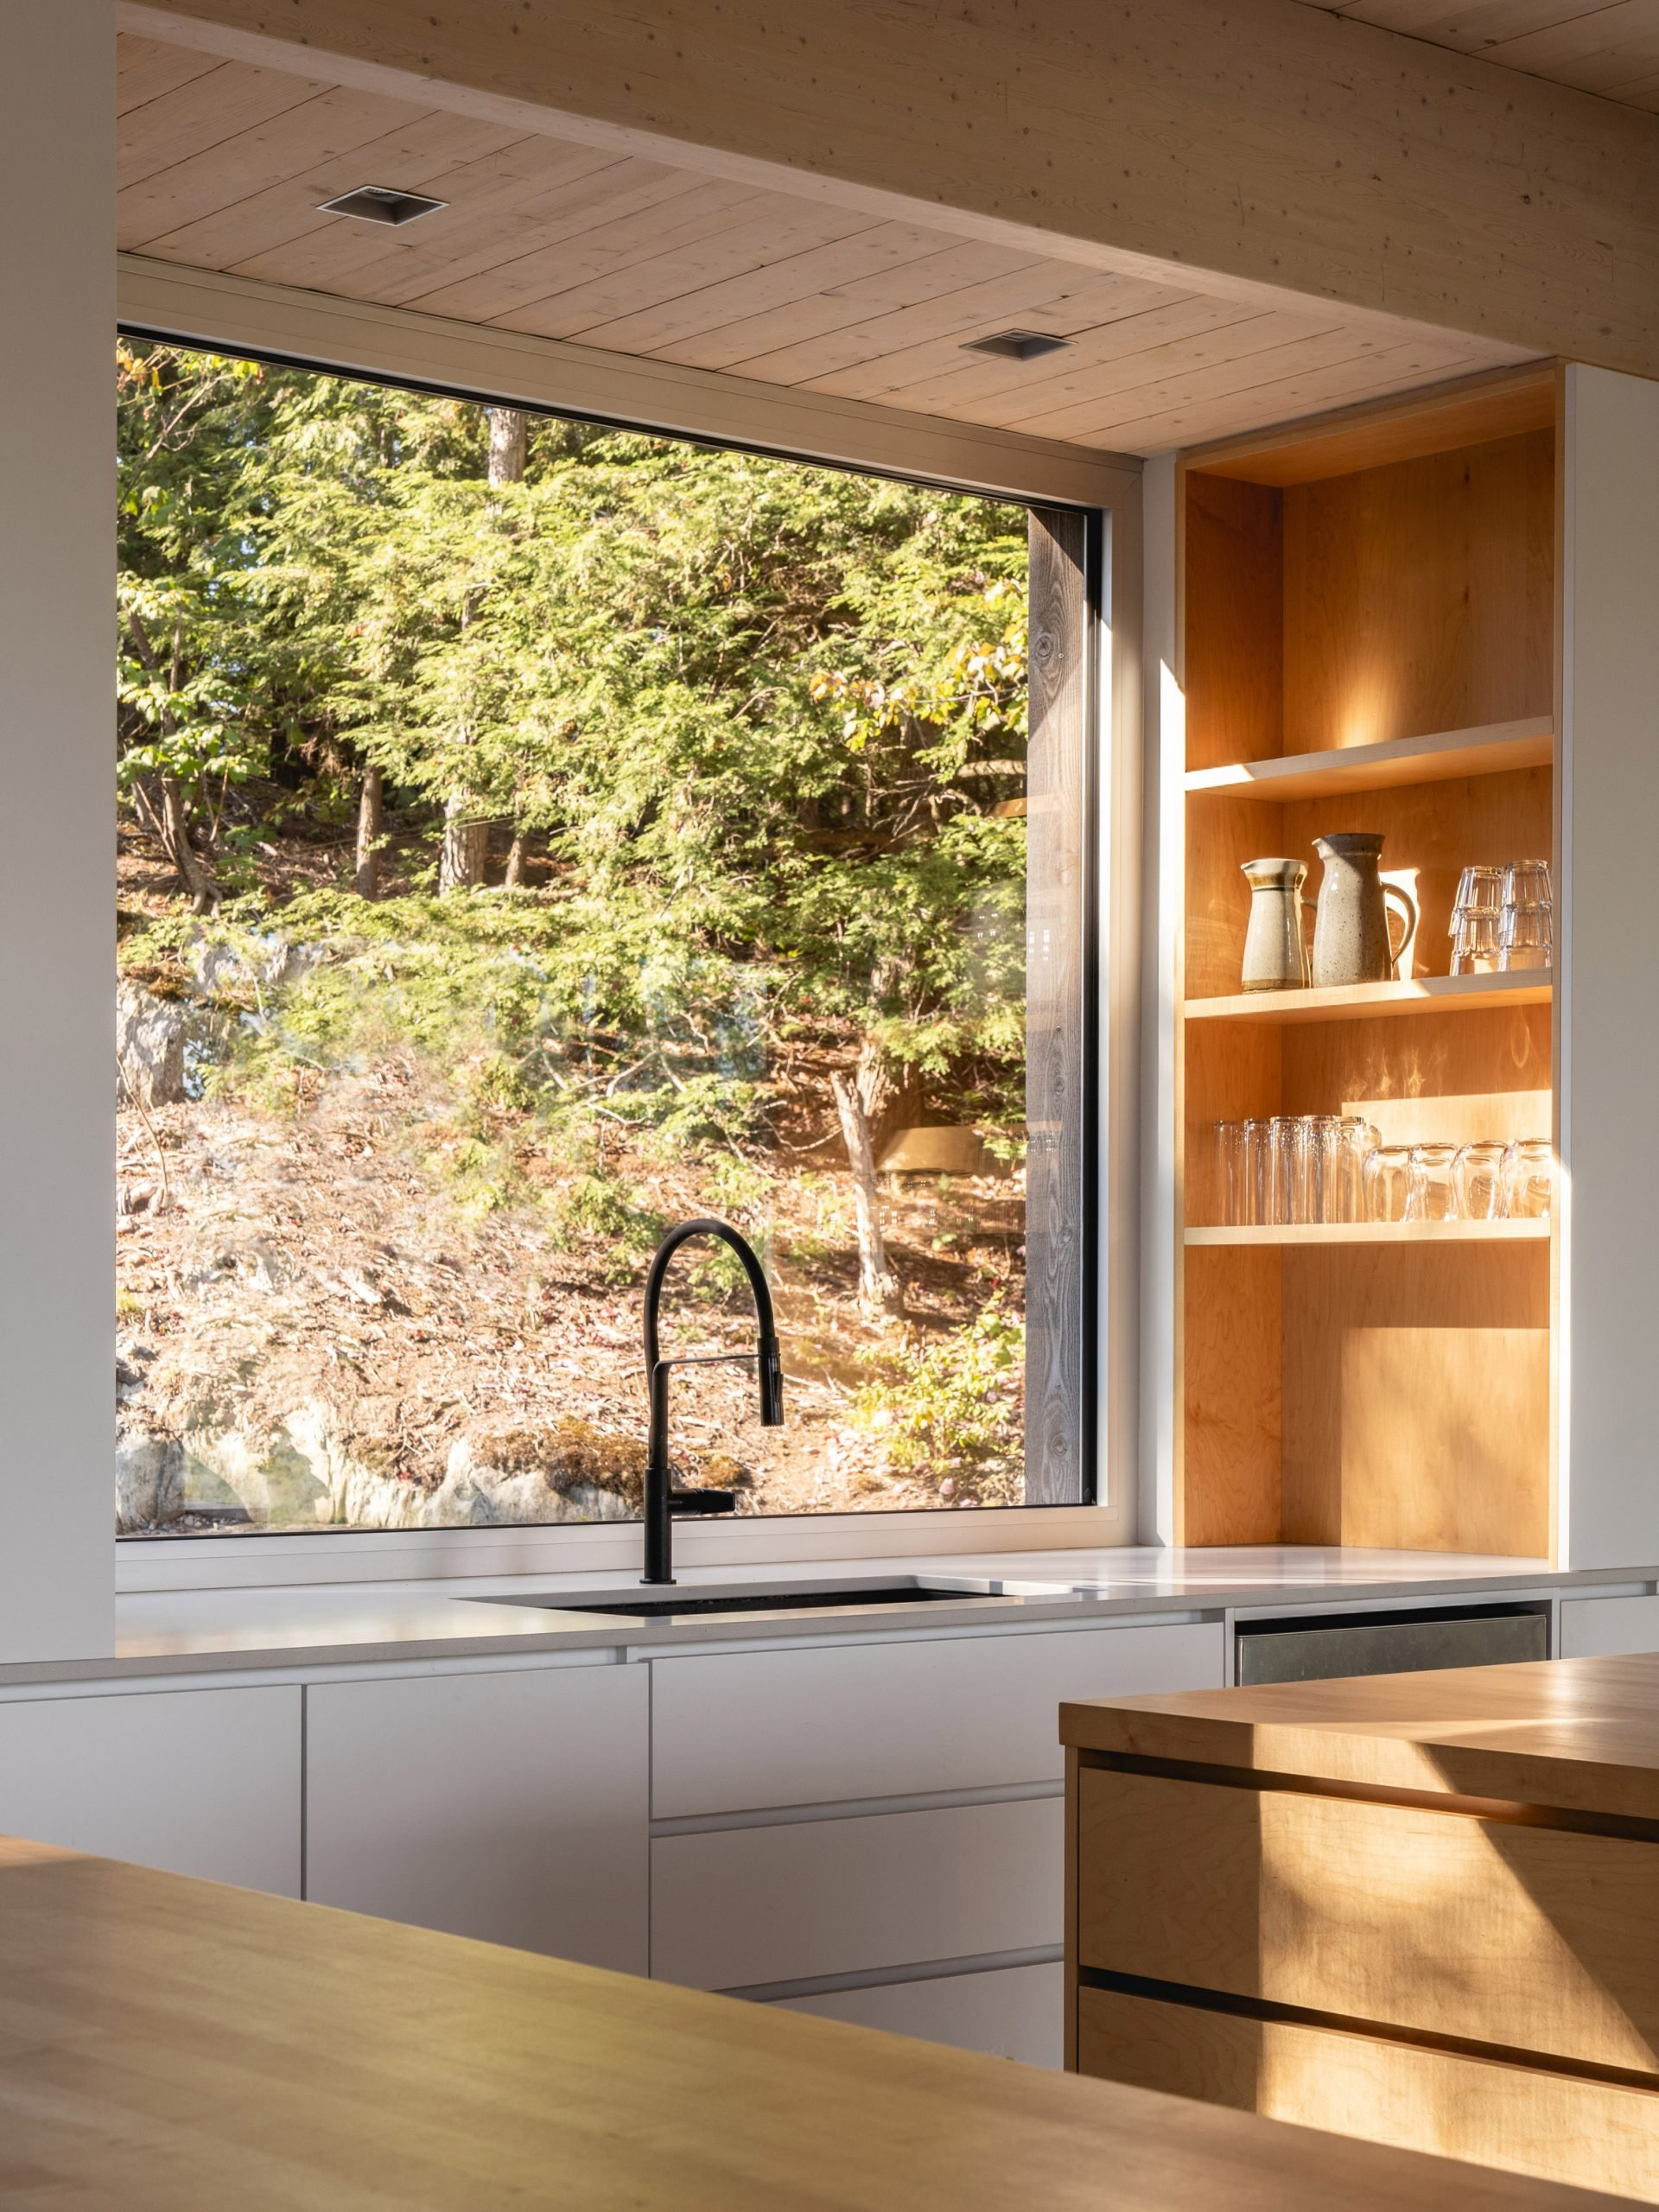 Kitchen sink of Forest House I by Natalie Dionne Architecture